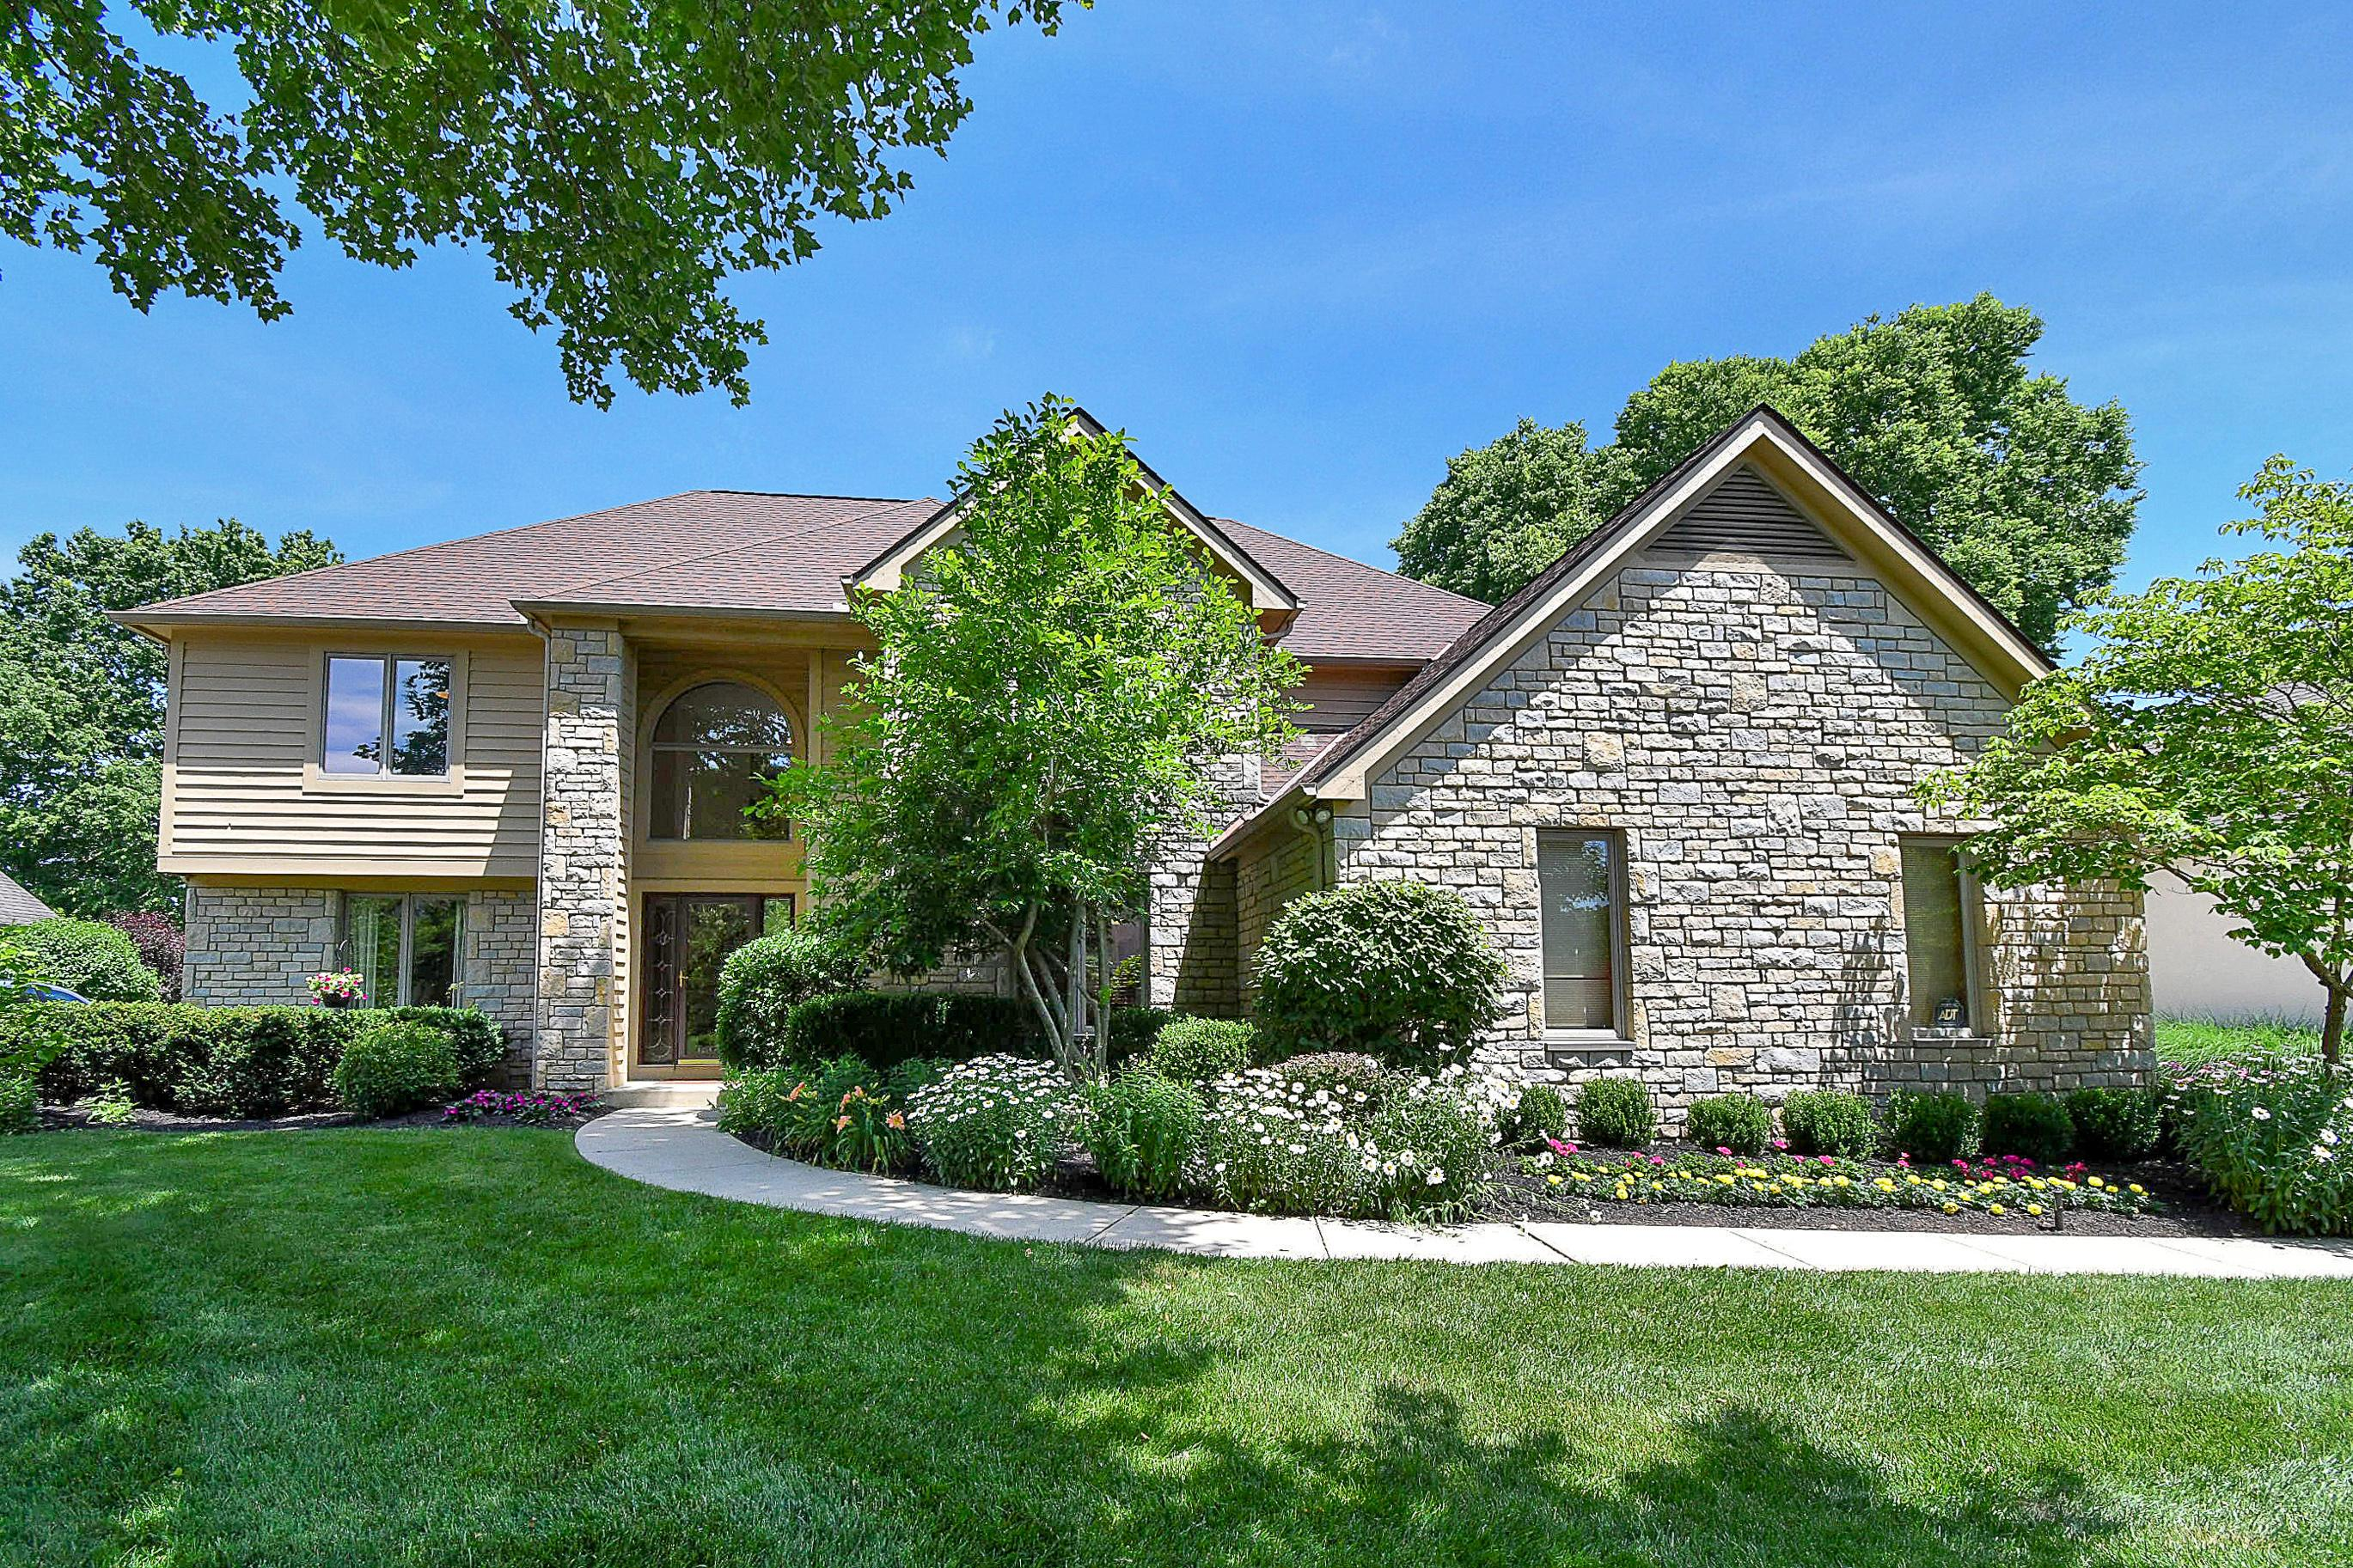 Photo of 648 Crossing Creek S, Gahanna, OH 43230